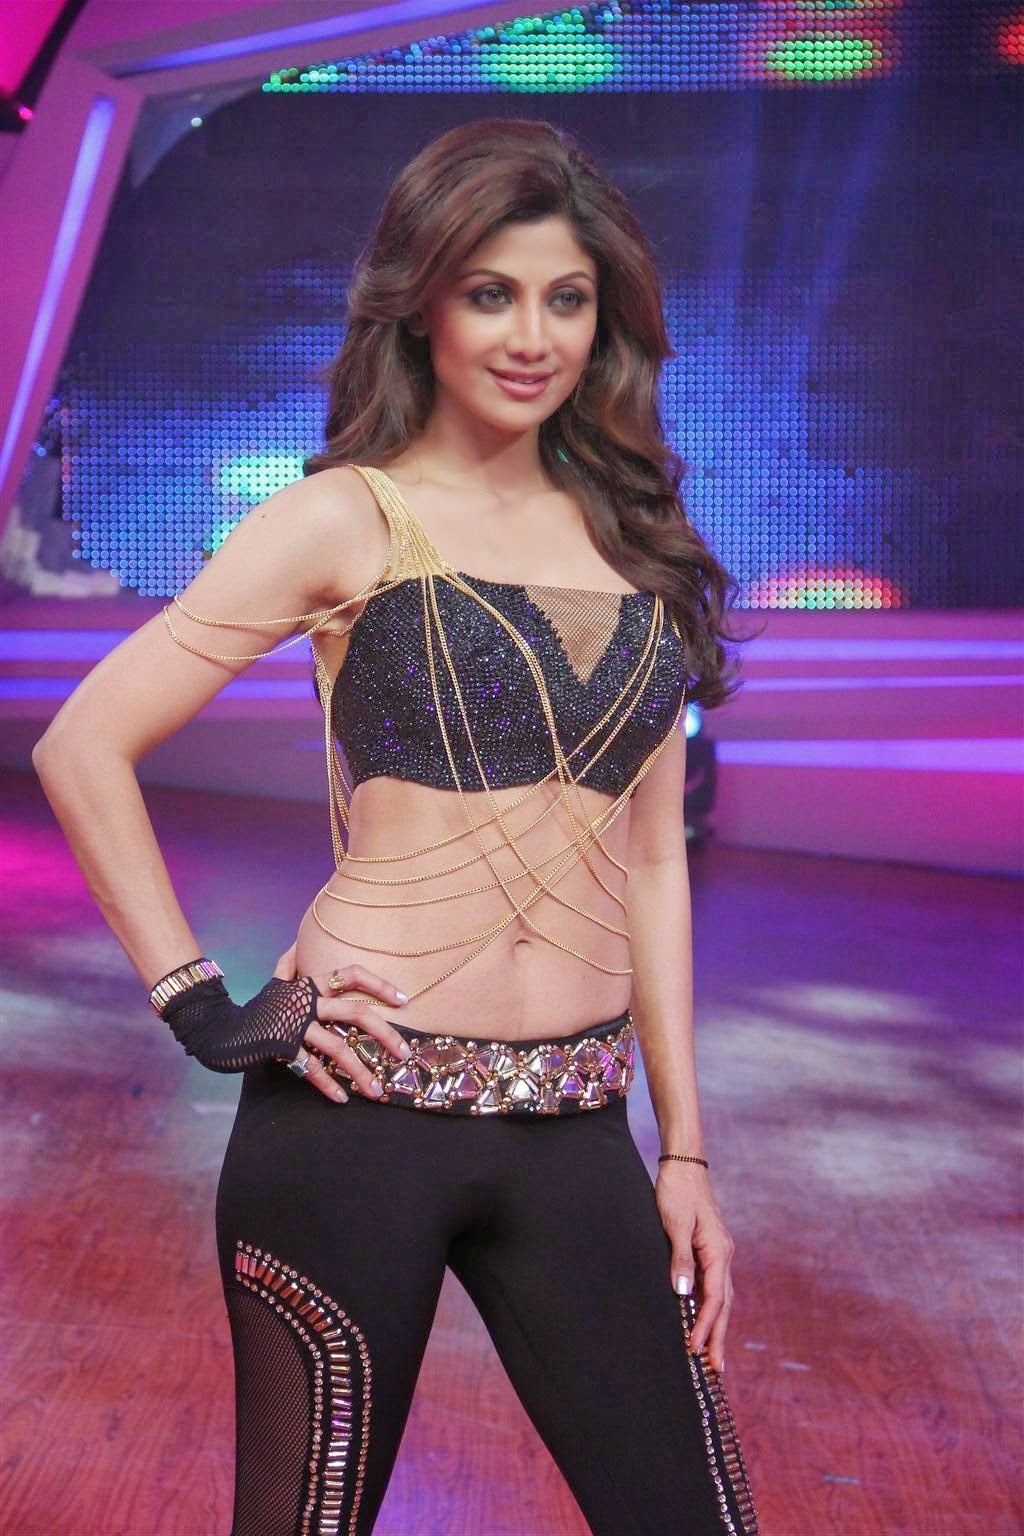 Shilpa Shetty's hot and sexy figure exposed on stage dance performance at Nach Baliye Season 6